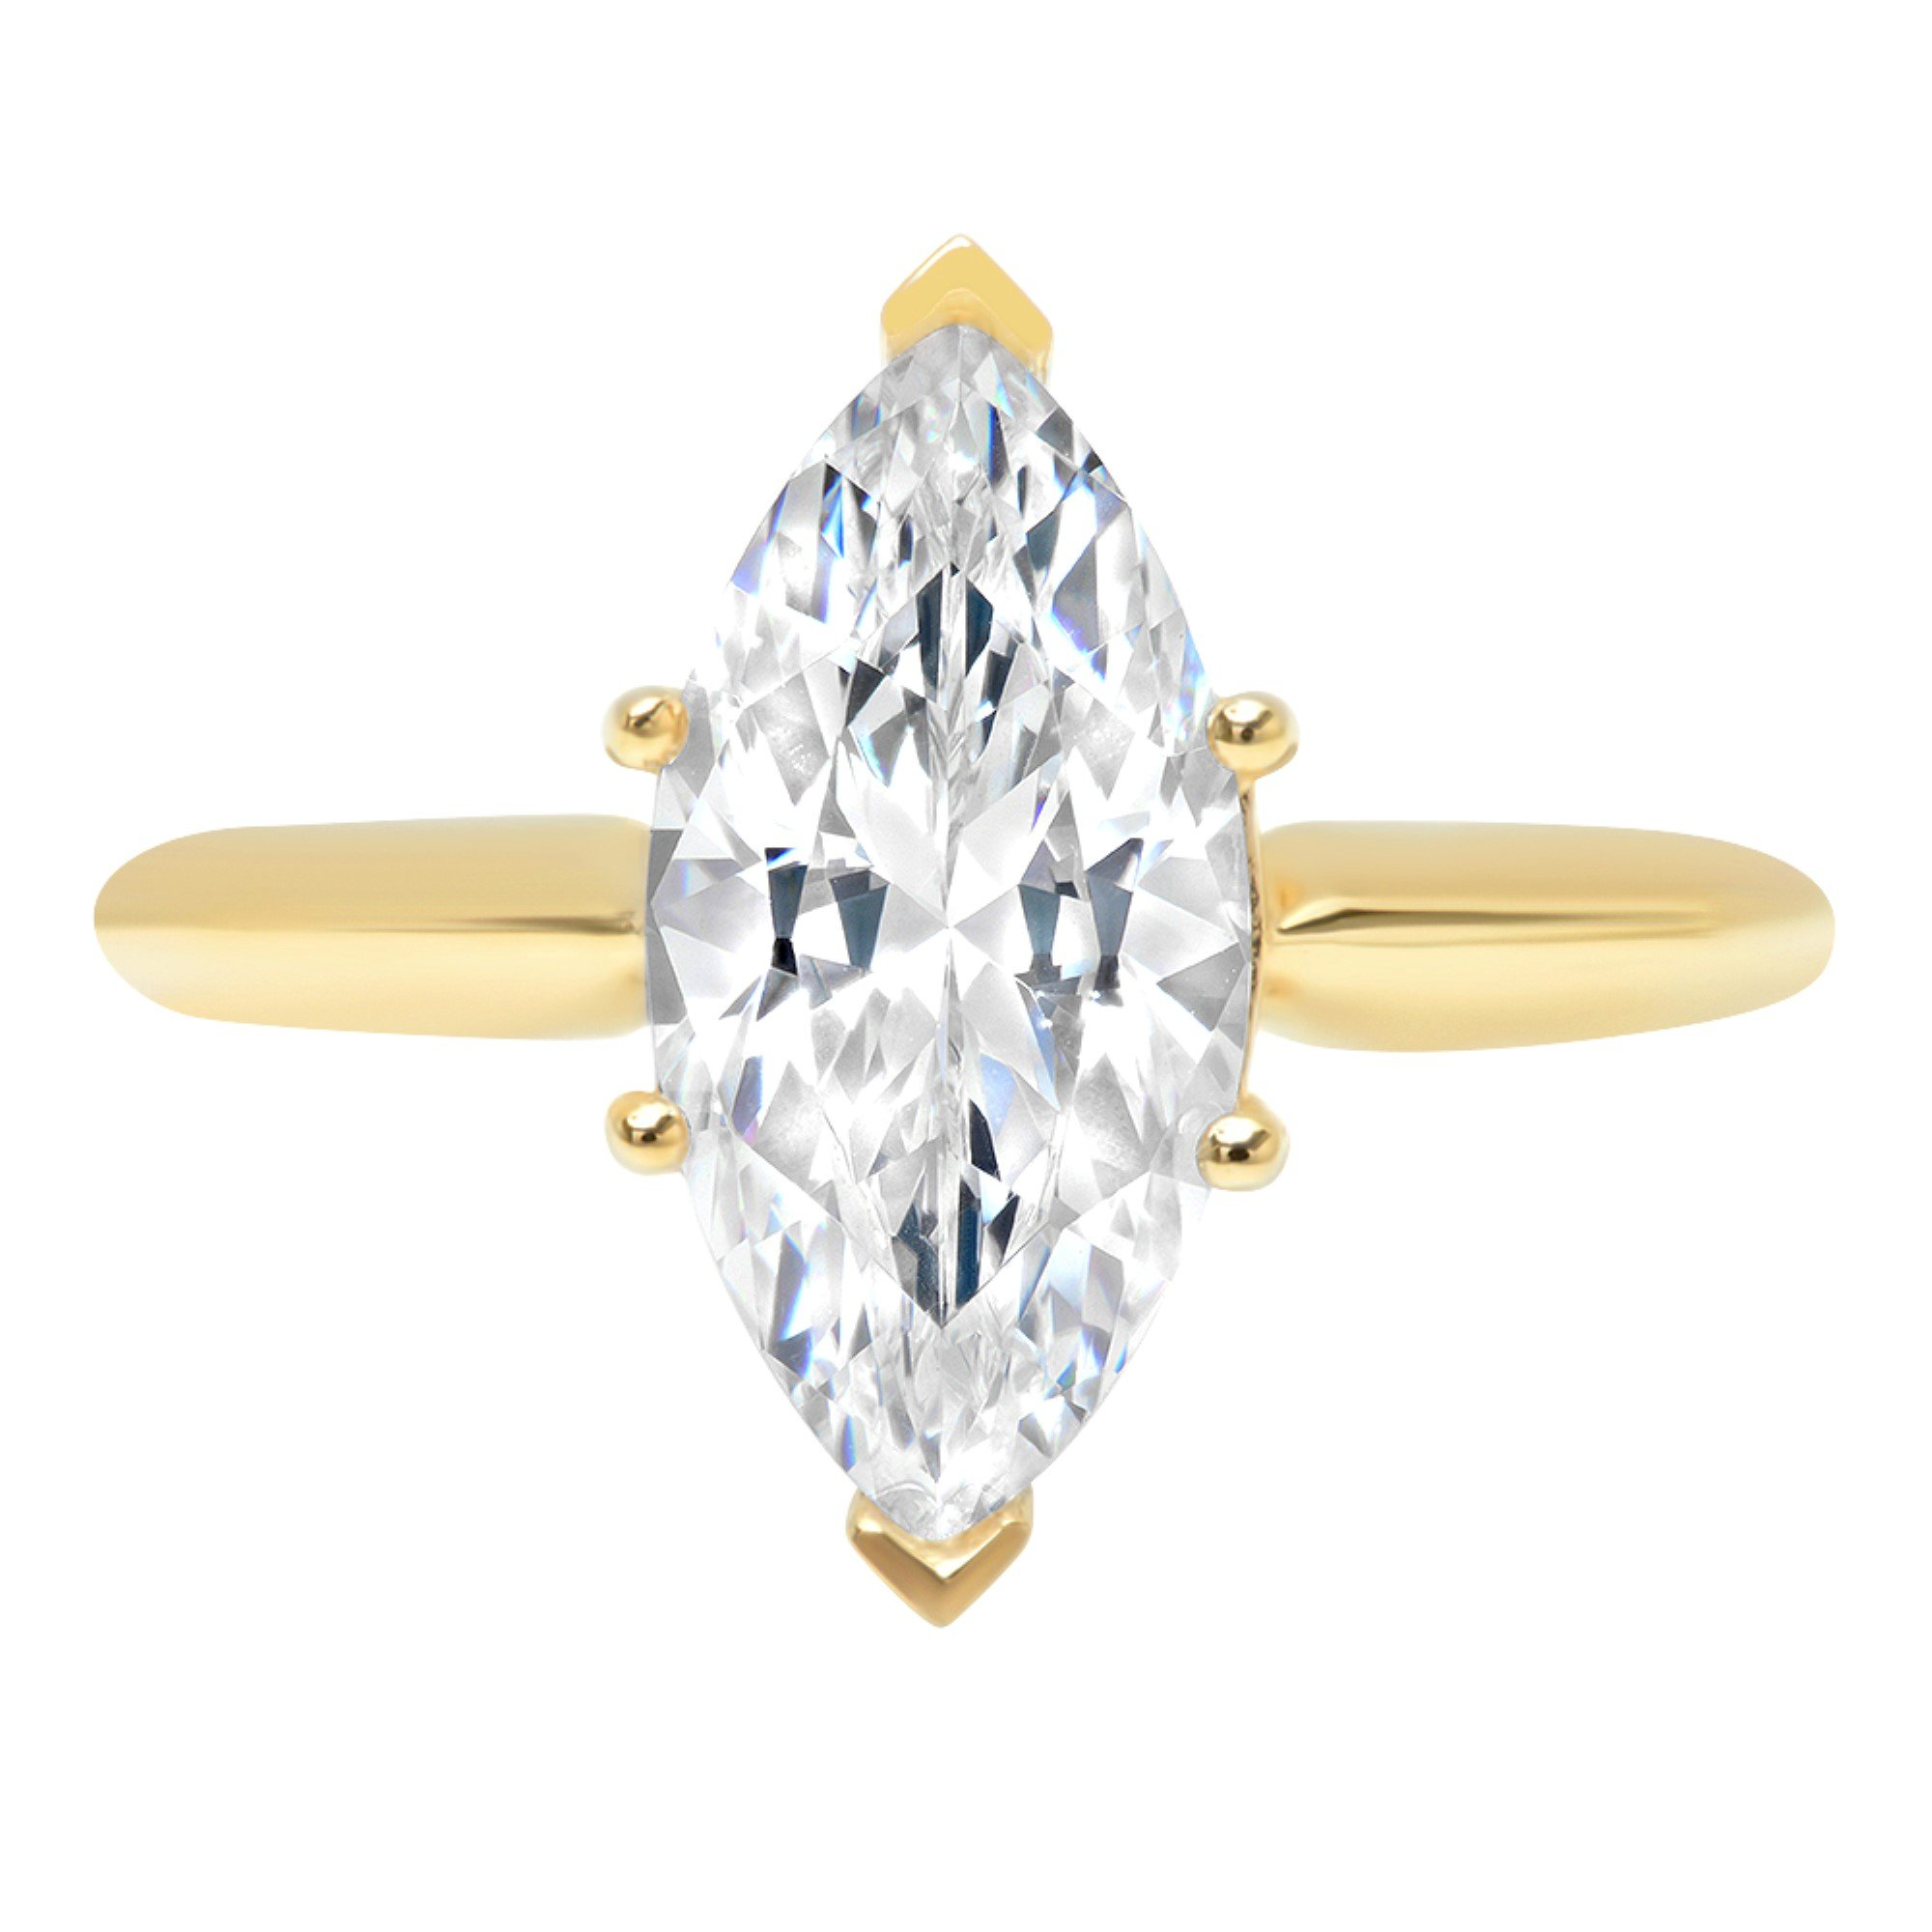 Marquise Brilliant Cut Classic Solitaire Designer Wedding Bridal Statement Anniversary Engagement Promise Ring Solid 14k Yellow Gold, 2.7ct, 6.5 by Clara Pucci (Image #1)